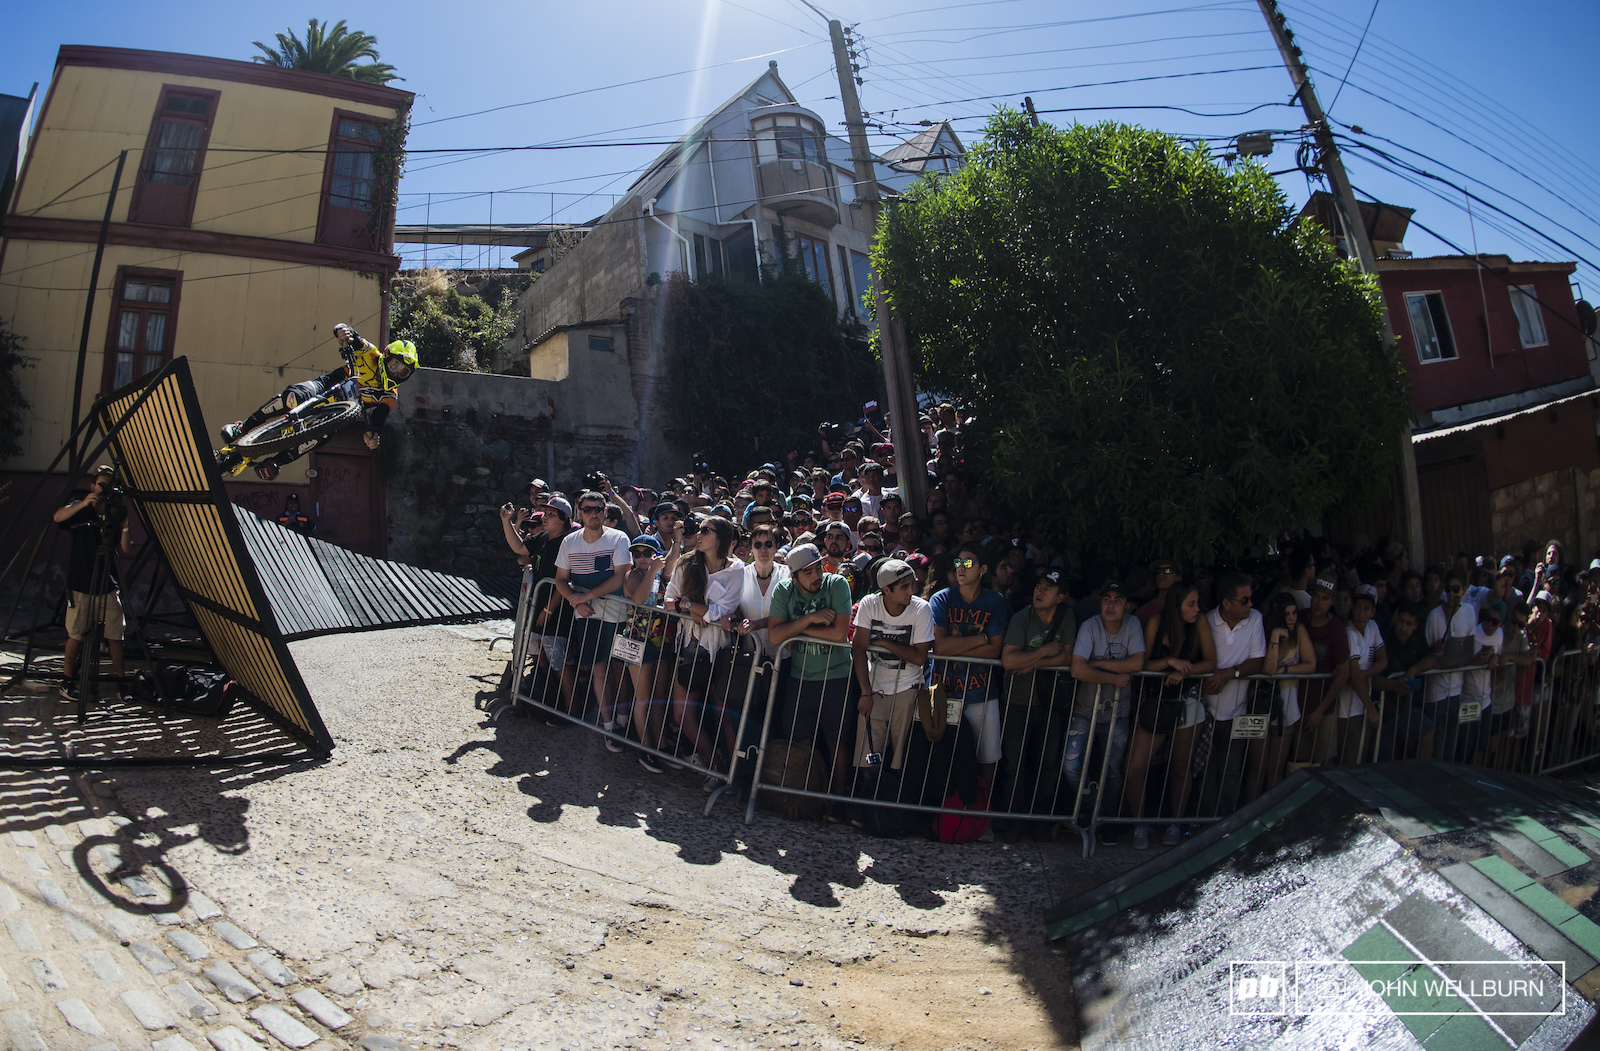 Chilean Pedro Ferreira hitting the wall ride gap high heading towards his third place podium spot.